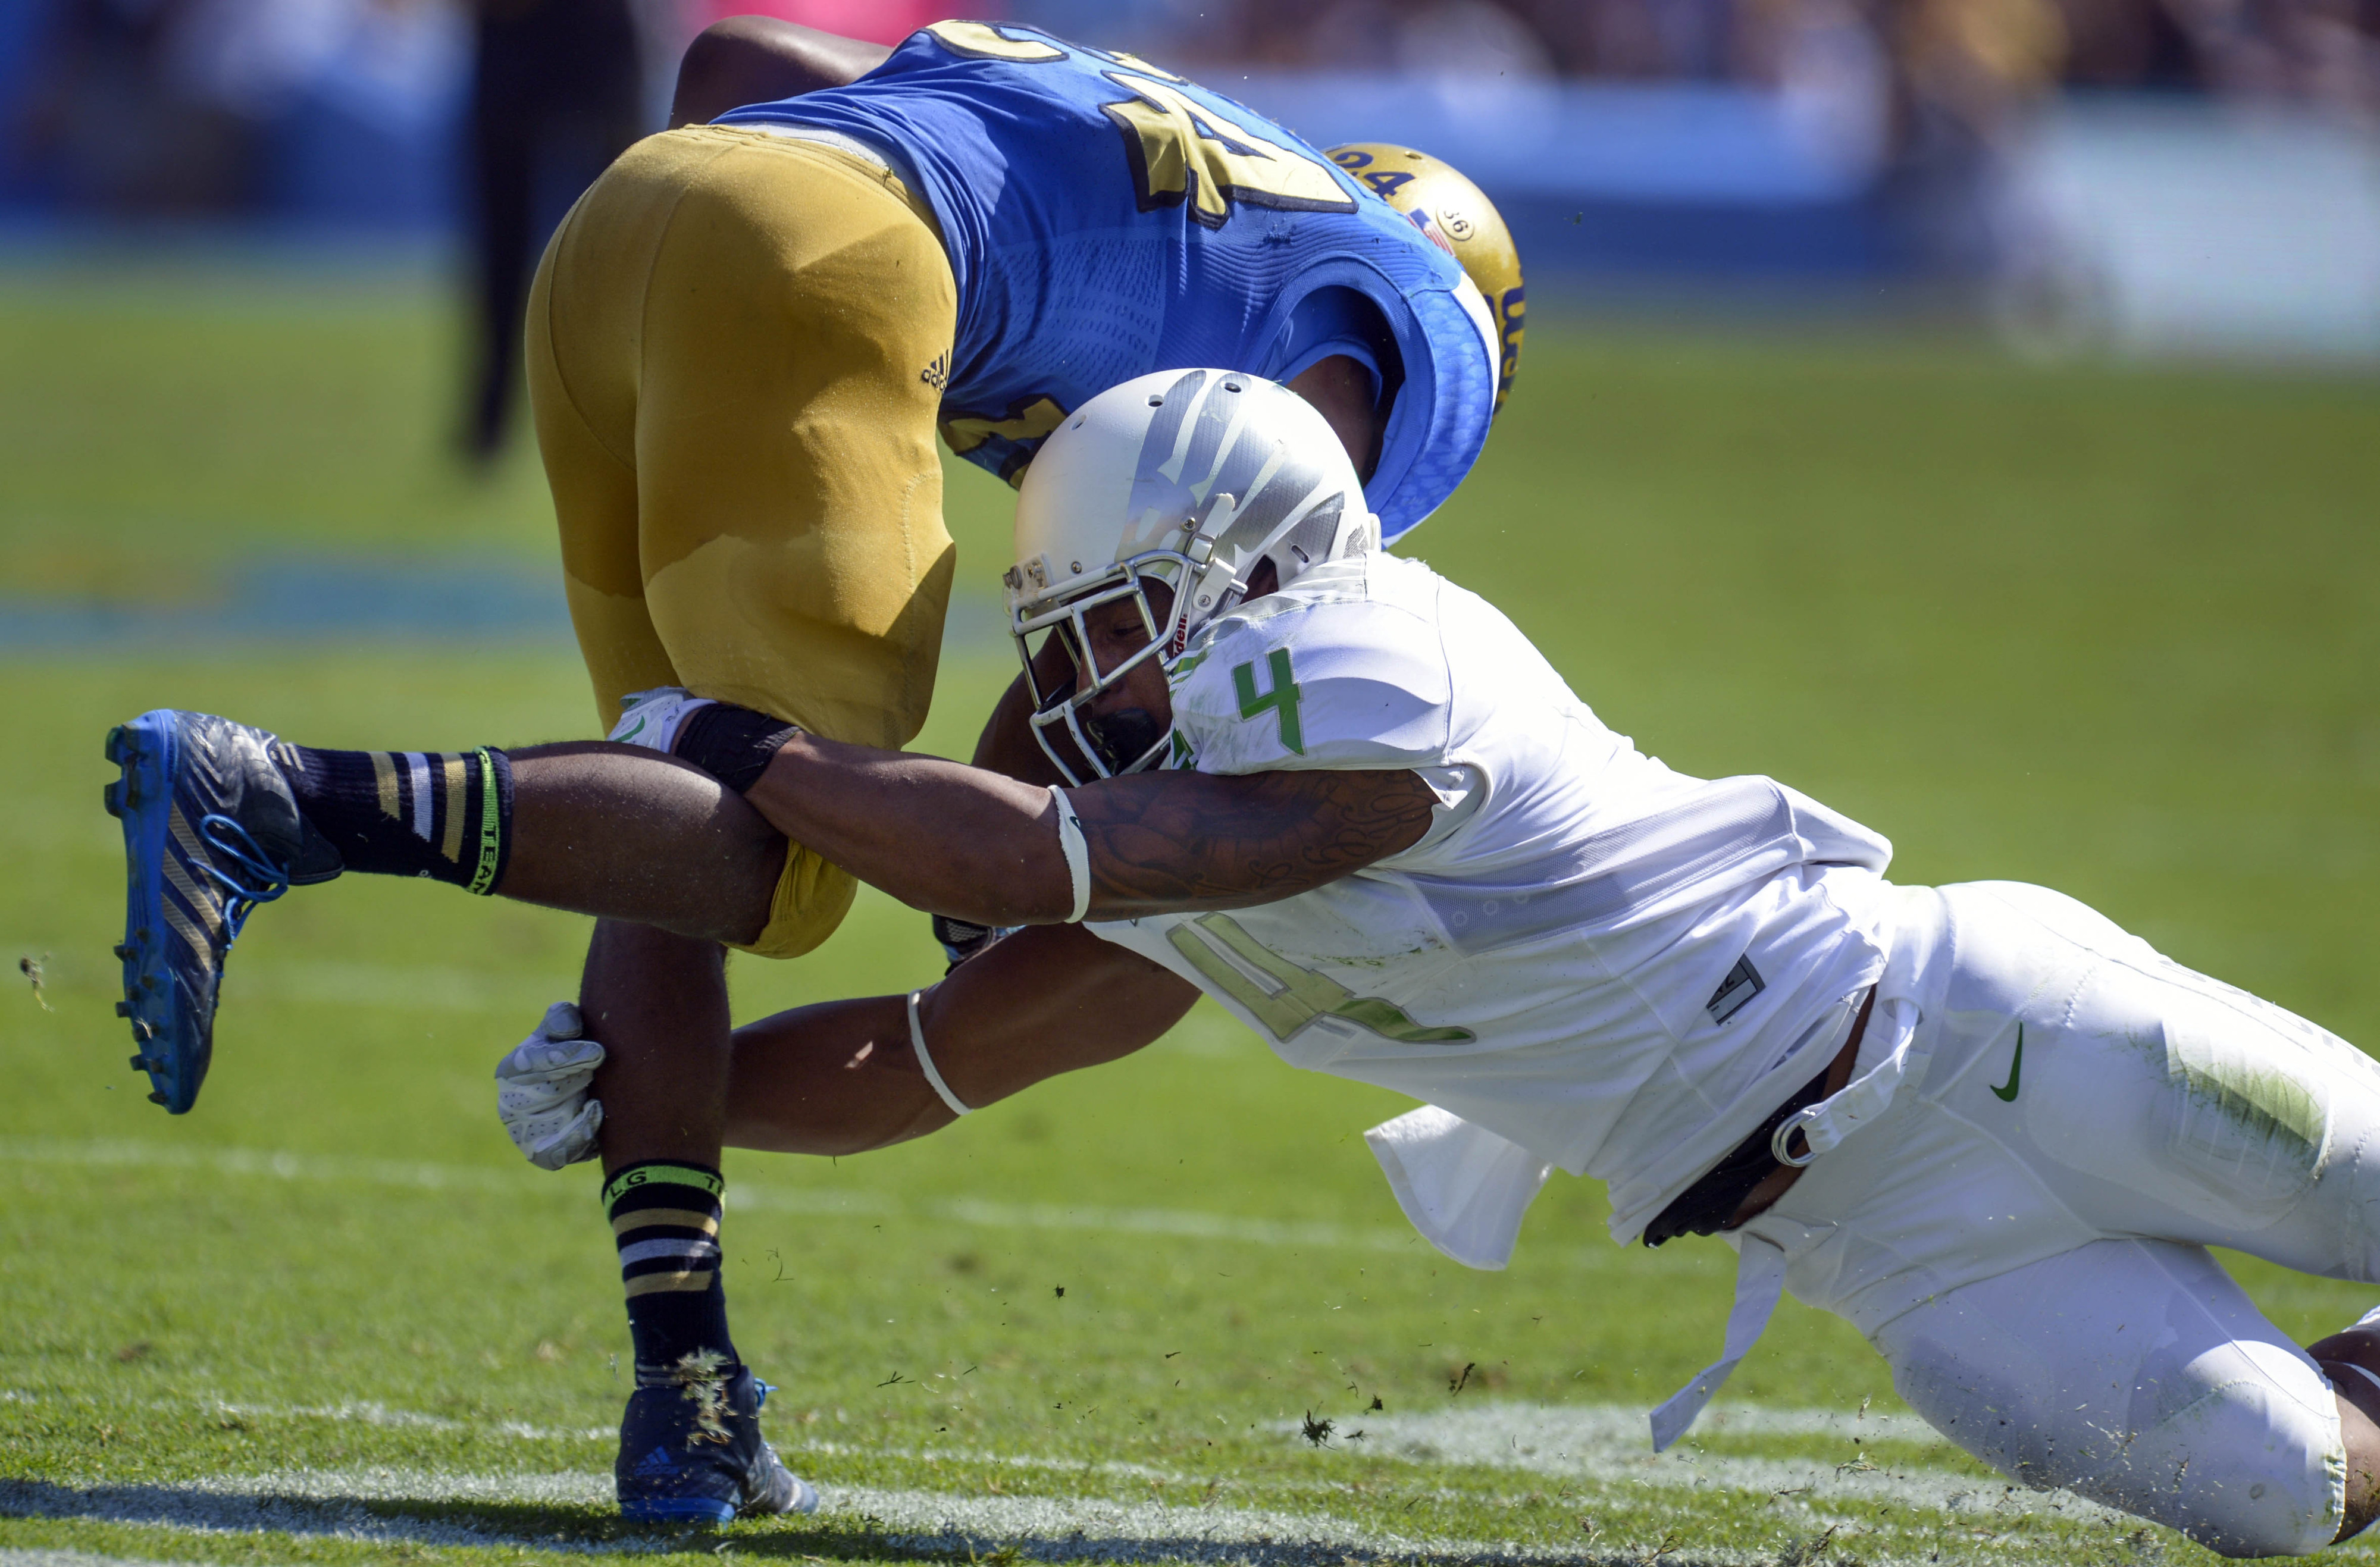 Another year where UCLA has been tripped up by the top of the Pac-12 conference.